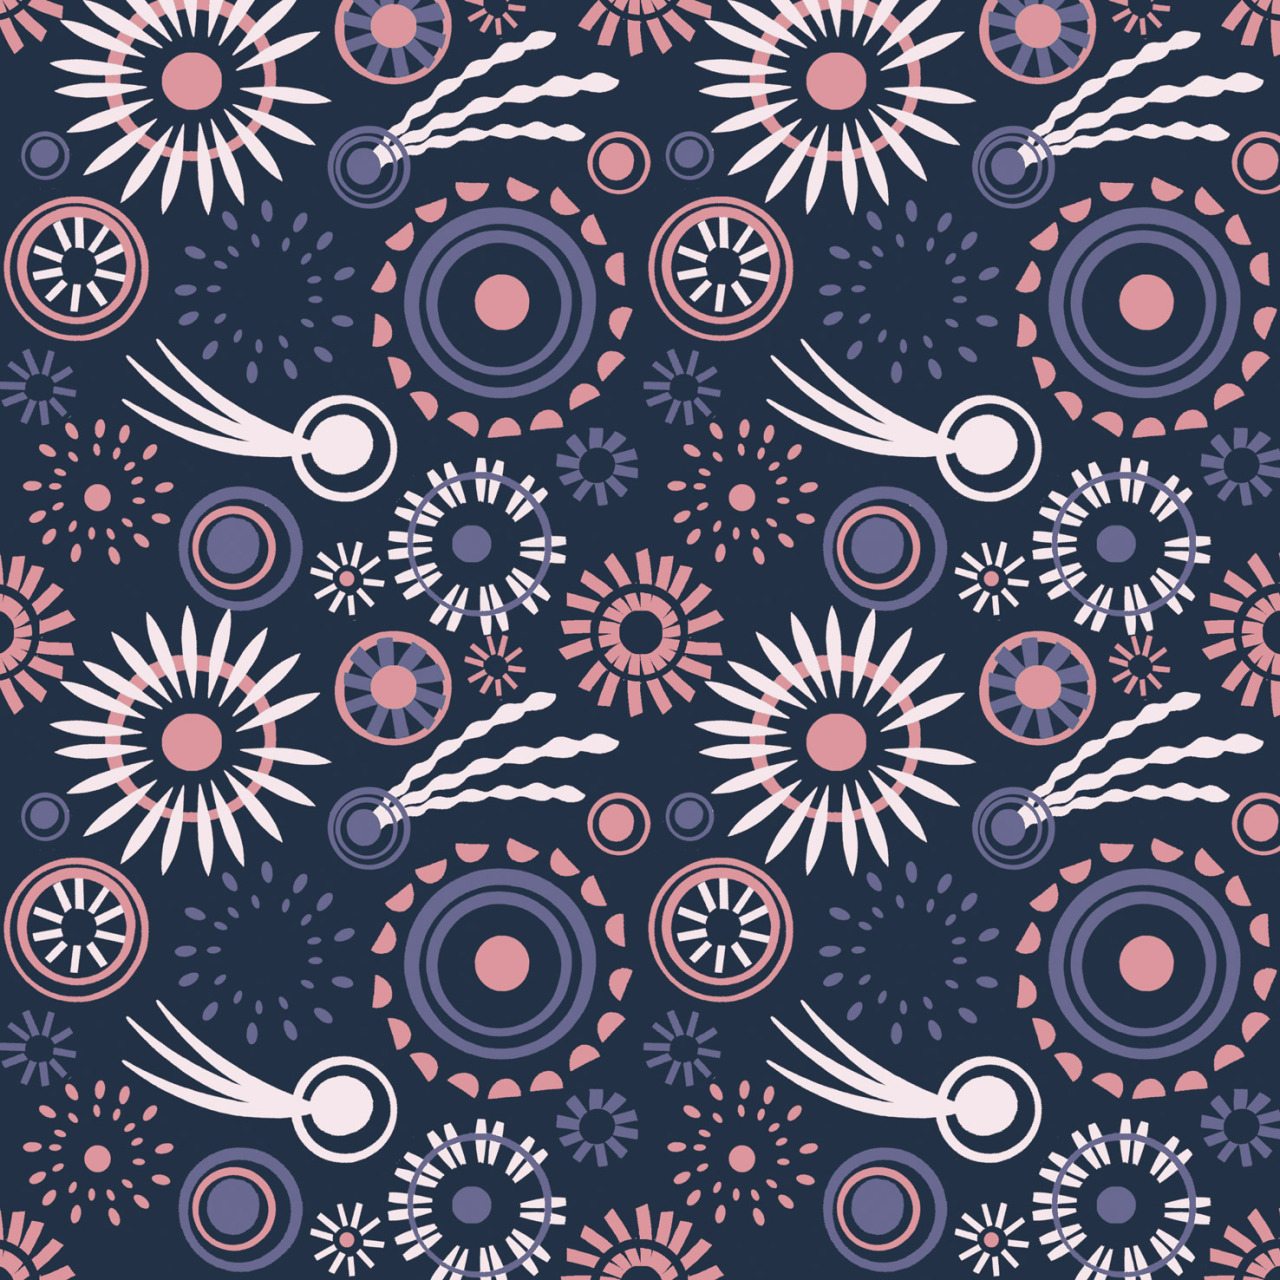 Remember remember…a fireworks inspired pattern